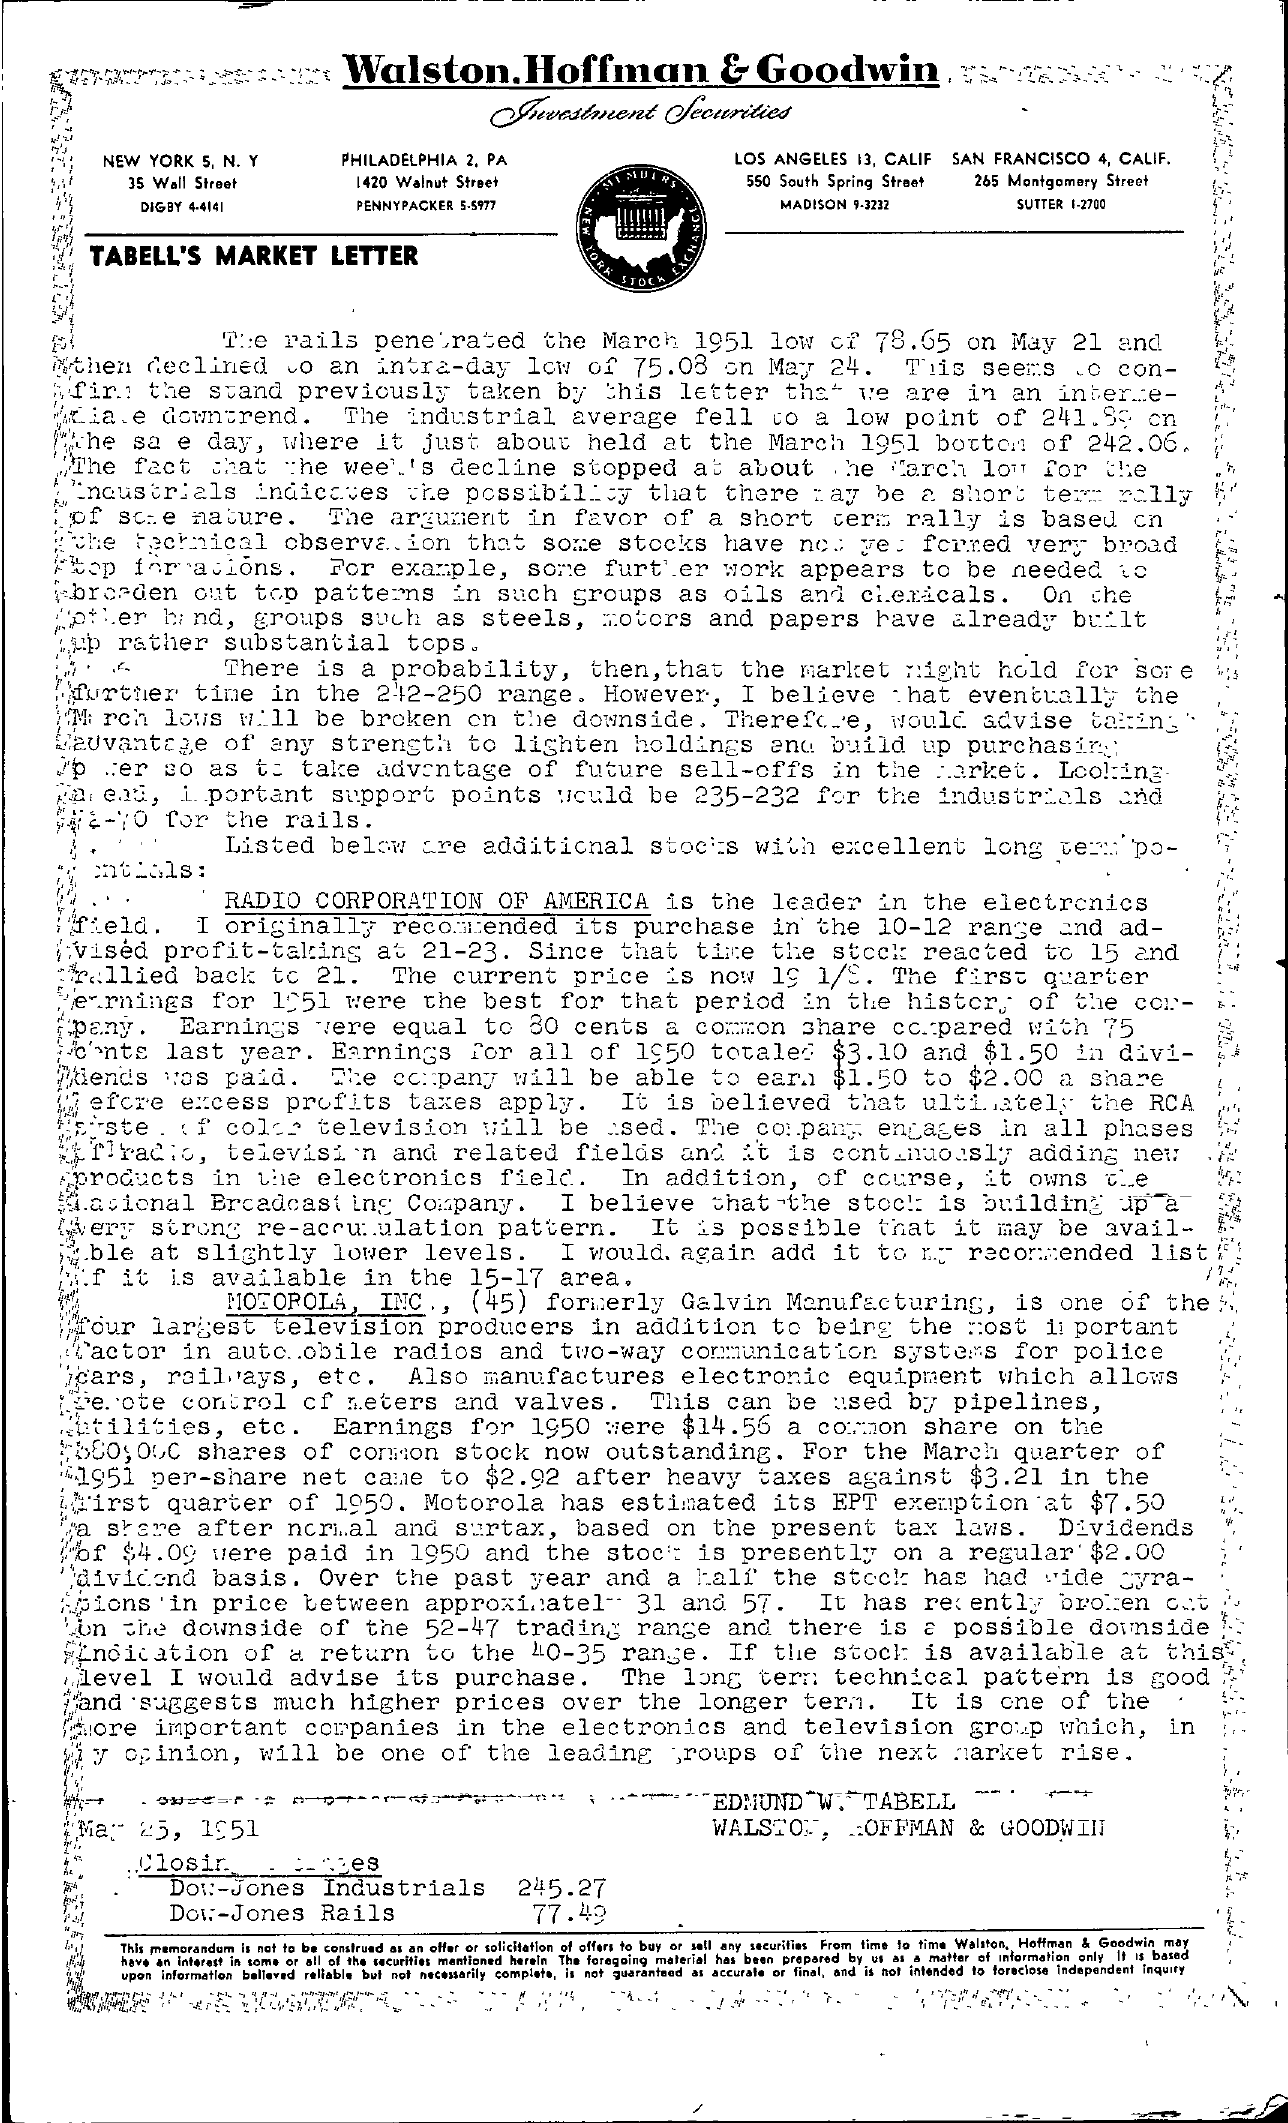 Tabell's Market Letter - May 23, 1951